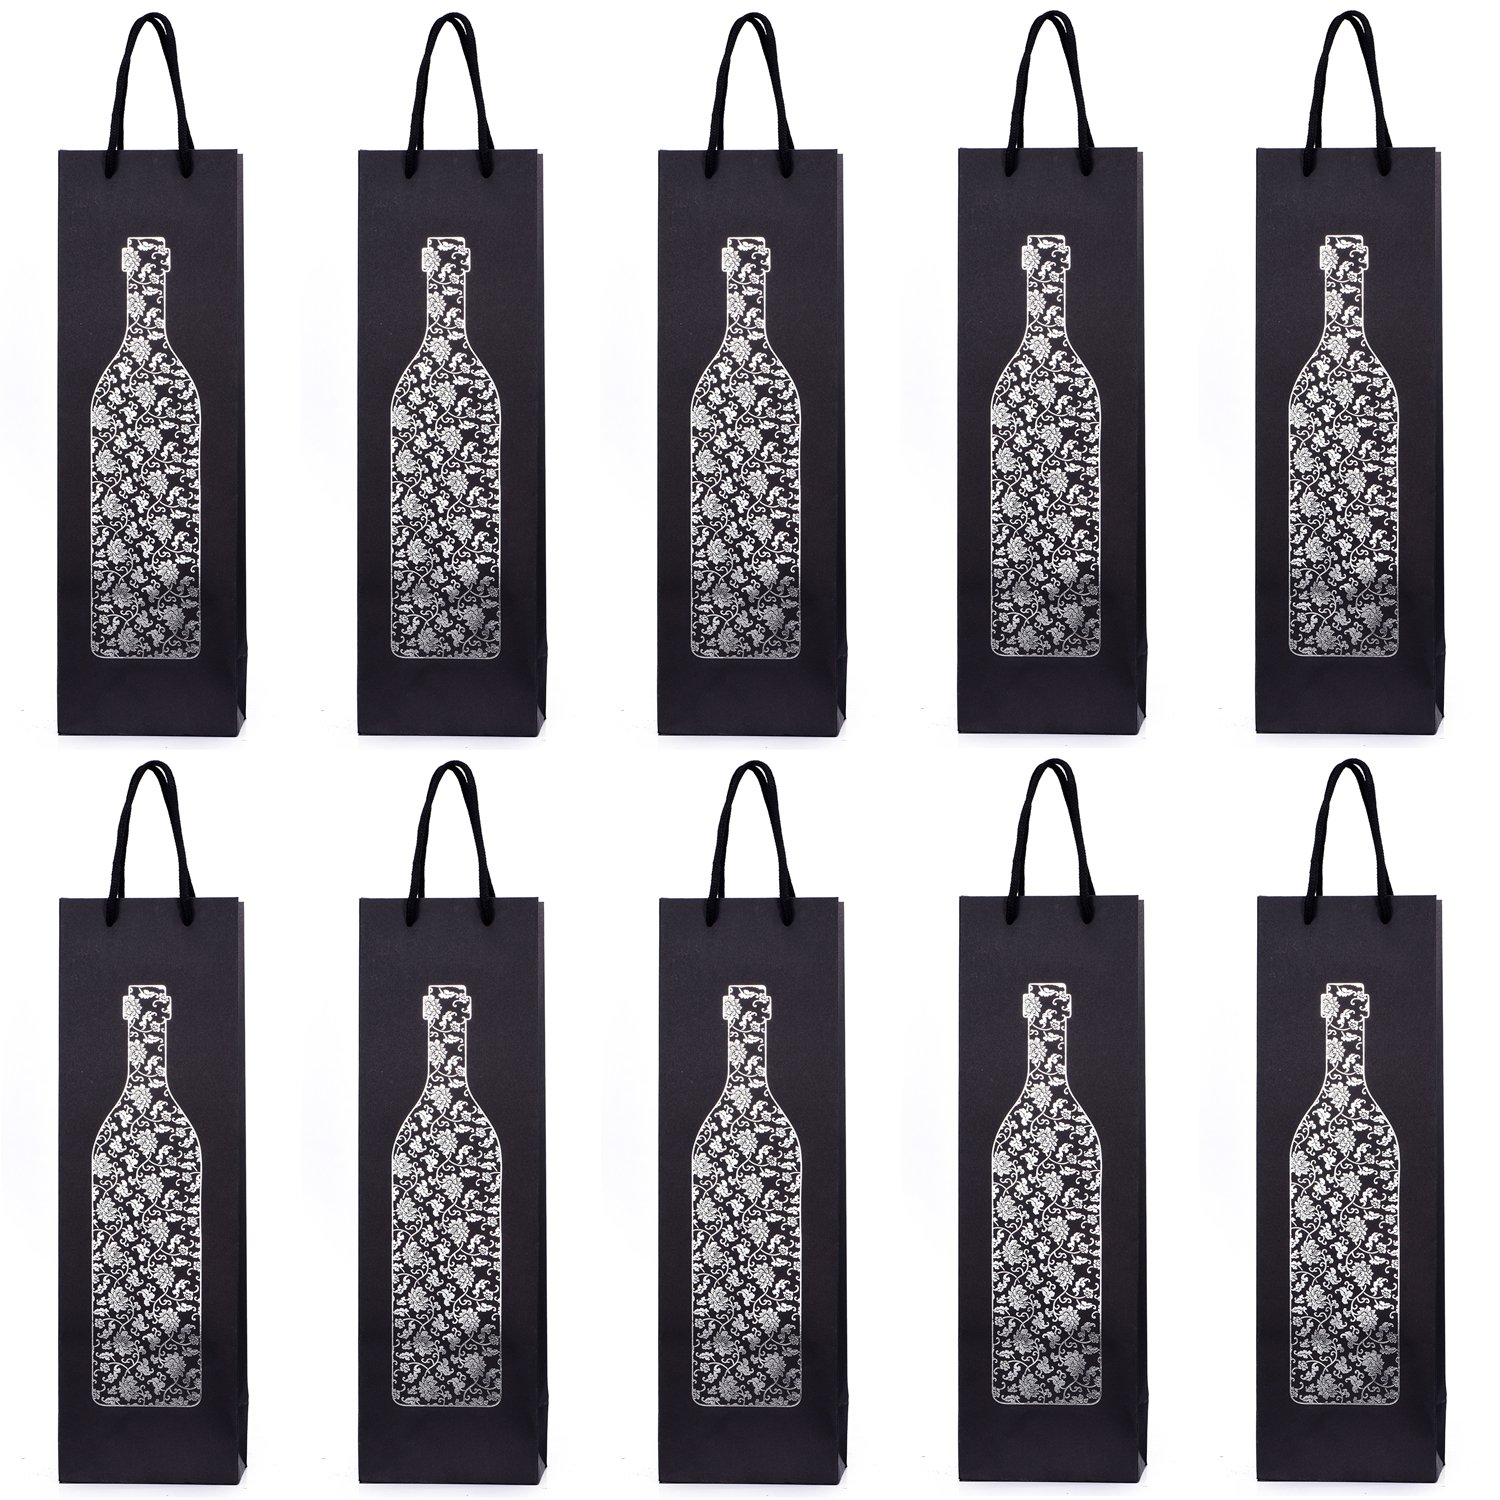 10 Gift Bags Bottle Bags for Wine Prosecco and Champagne 15.75 x 4.72 x 3.54 inch 40 x 12 x 9 cm Congratulations II